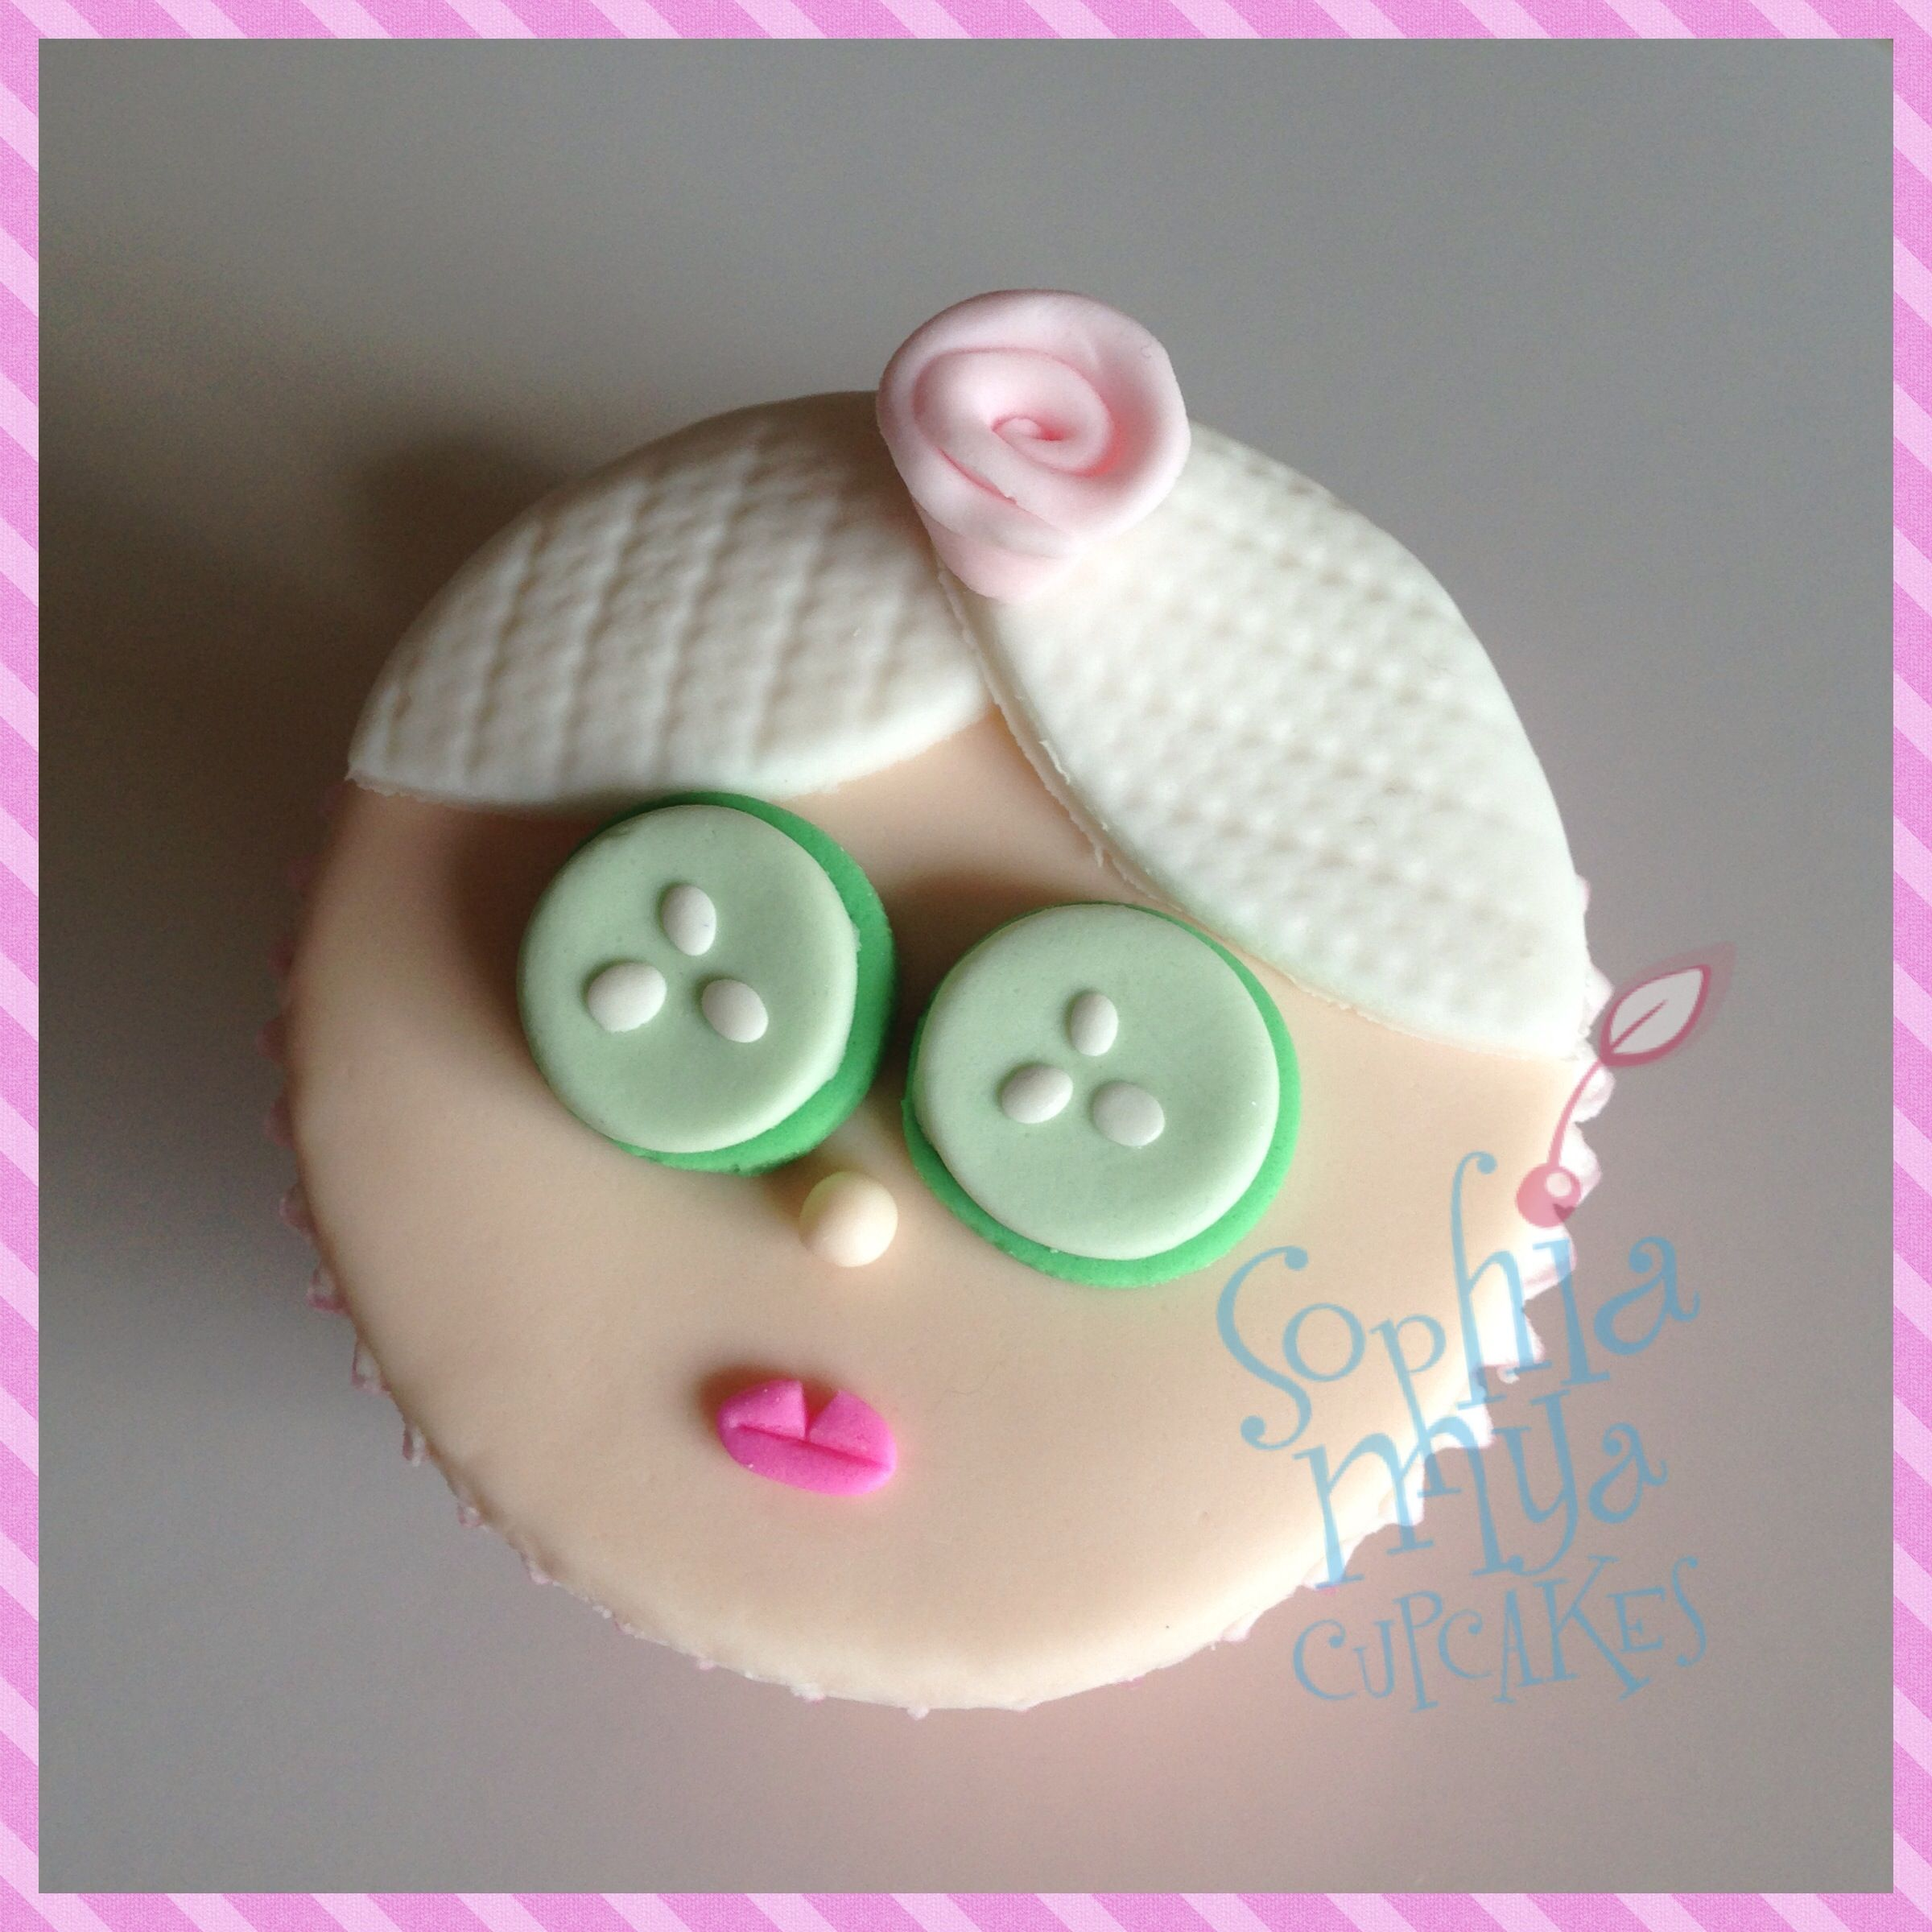 Pamper Party Cake Images : Pamper party cupcakes Party ideas 2015 Pinterest